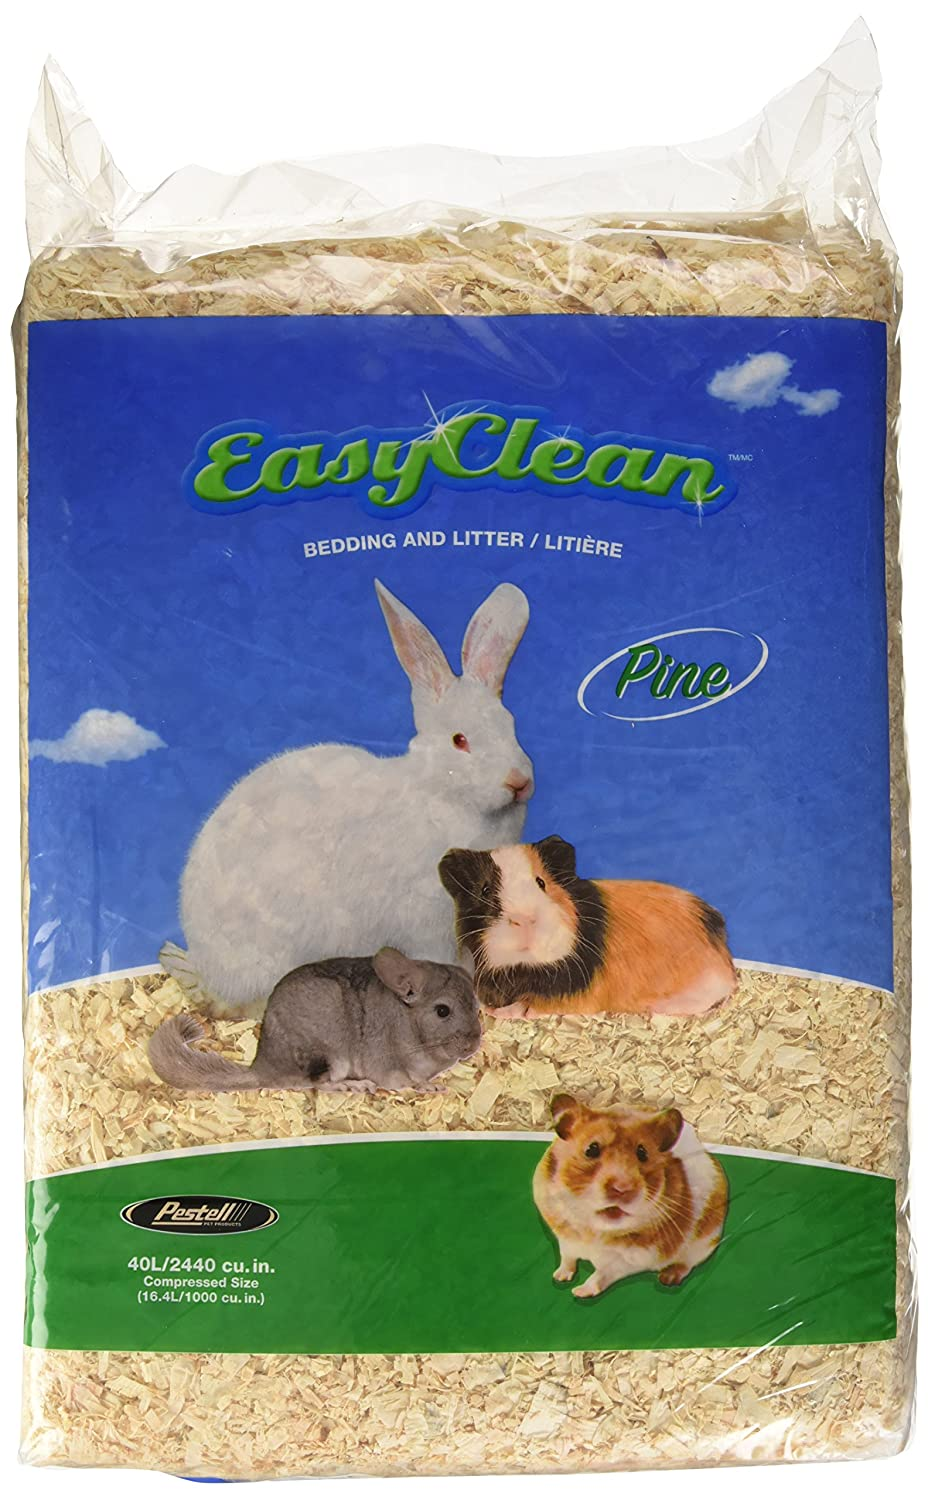 Pestell Pet Products Easy Clean Pine Bedding 40 liters